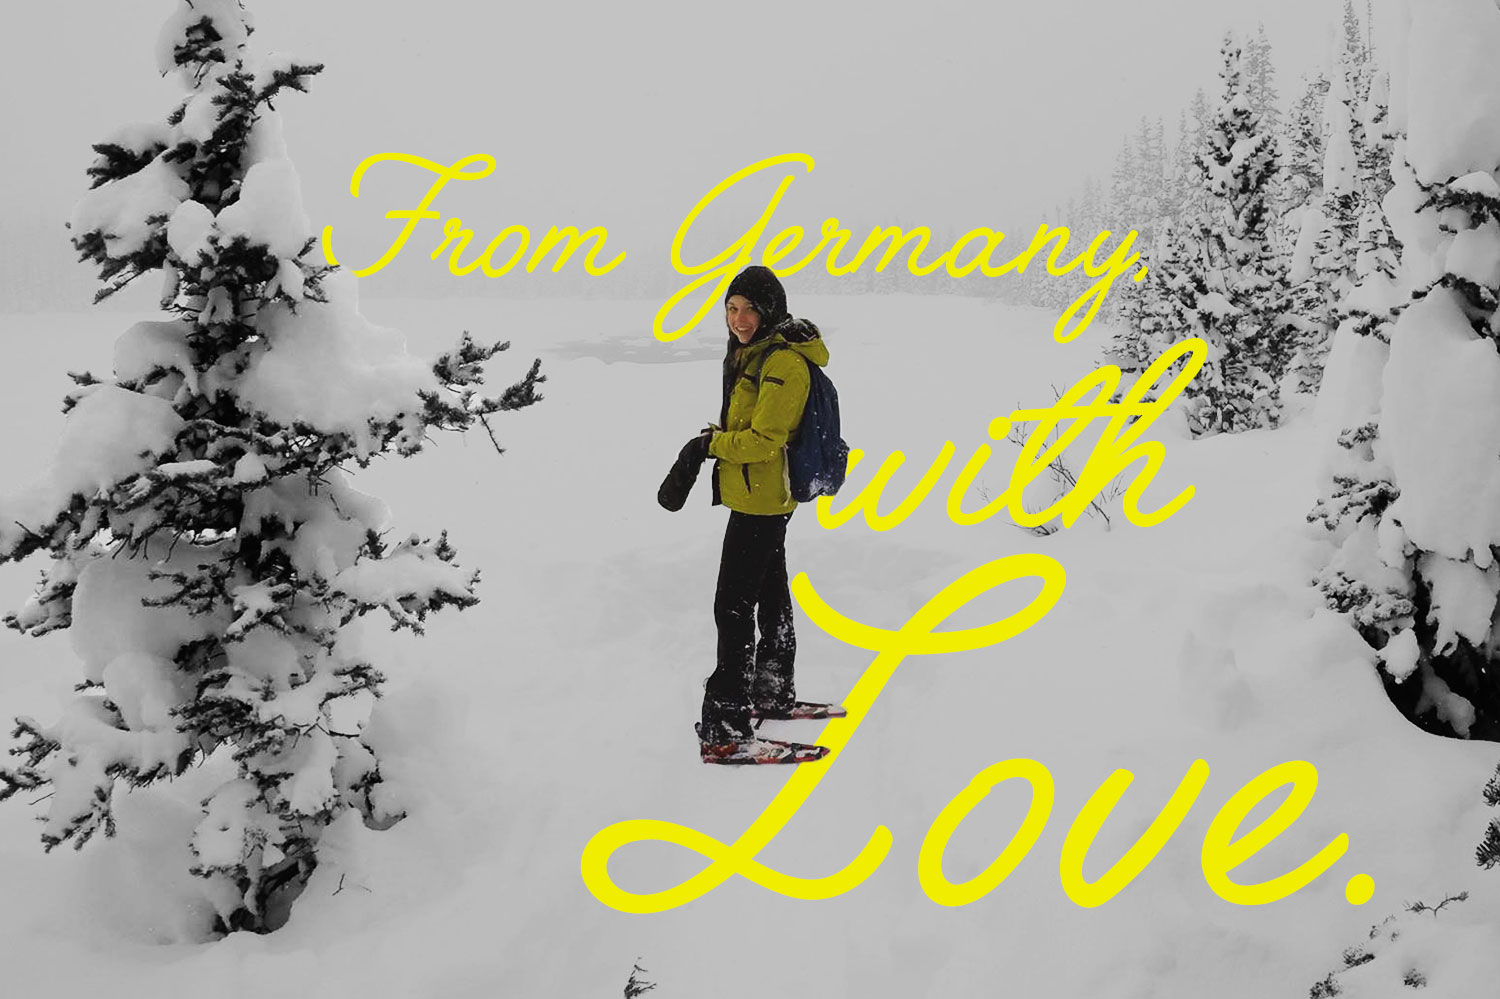 woman snowshoeing with text from germany with love